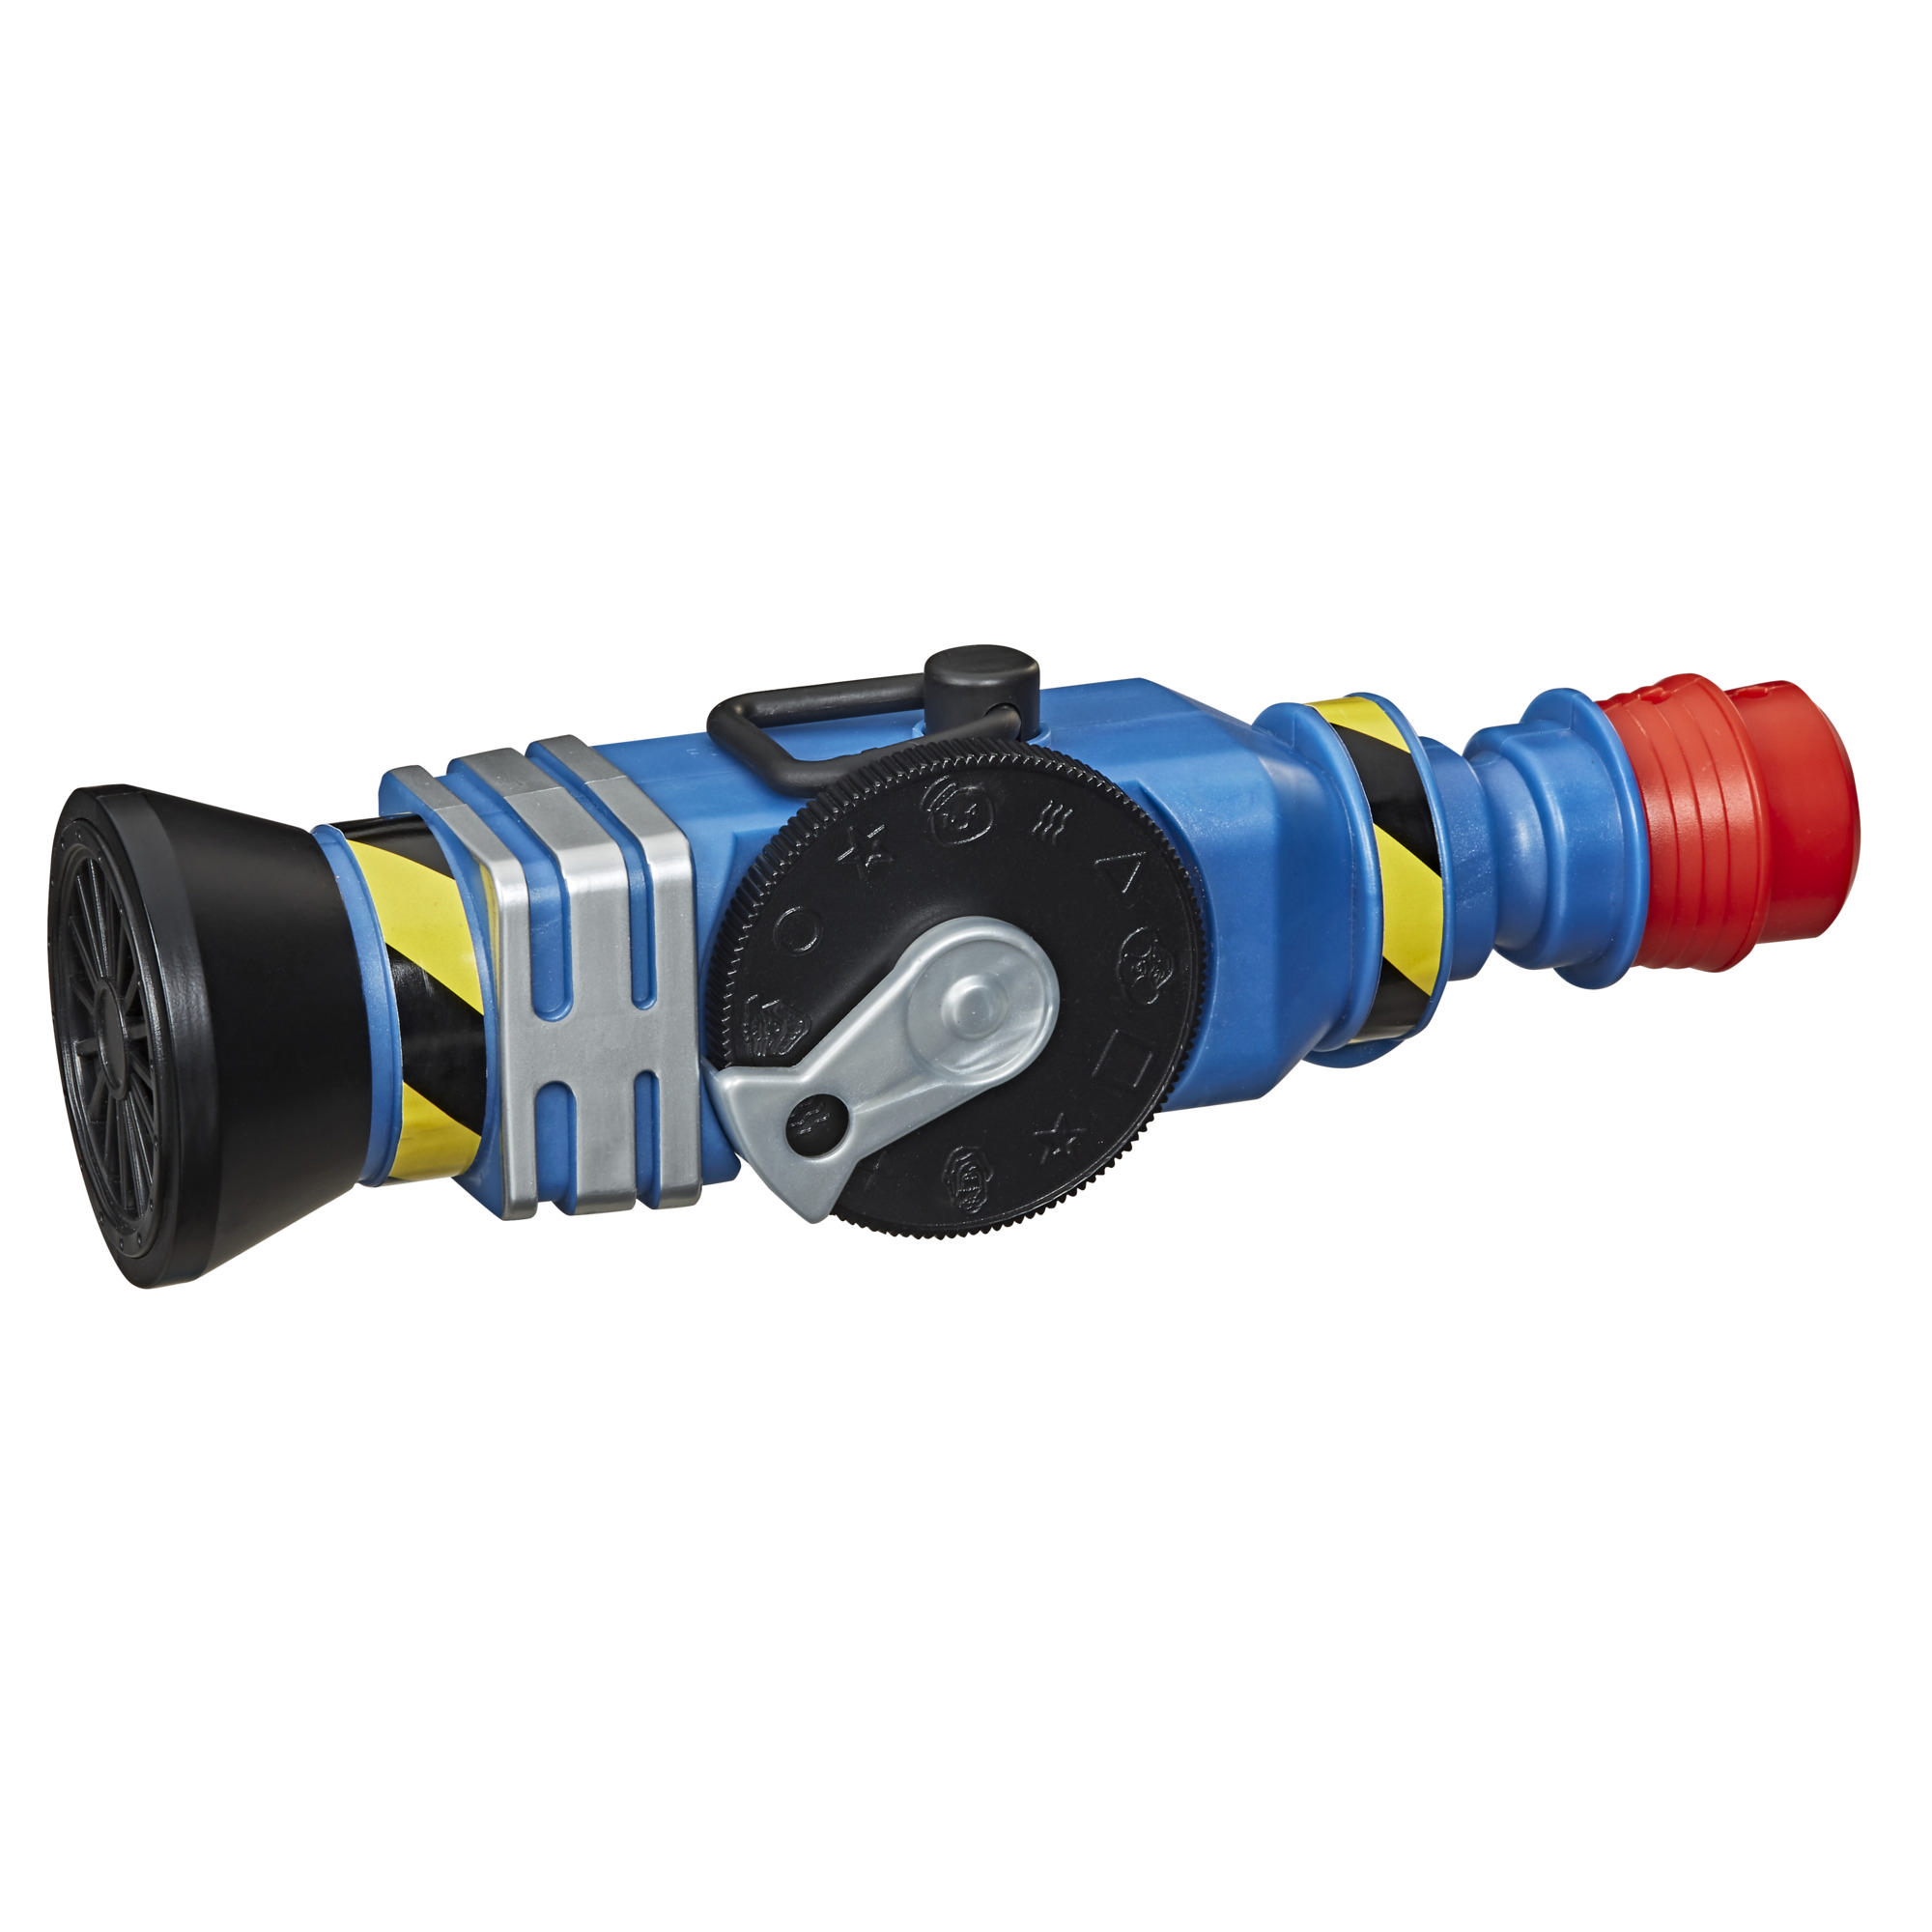 Ghostbusters Afterlife Ghost Whistle Roleplay Toy Movie-Inspired Gear Great Gift for Kids, Collectors, and Fans